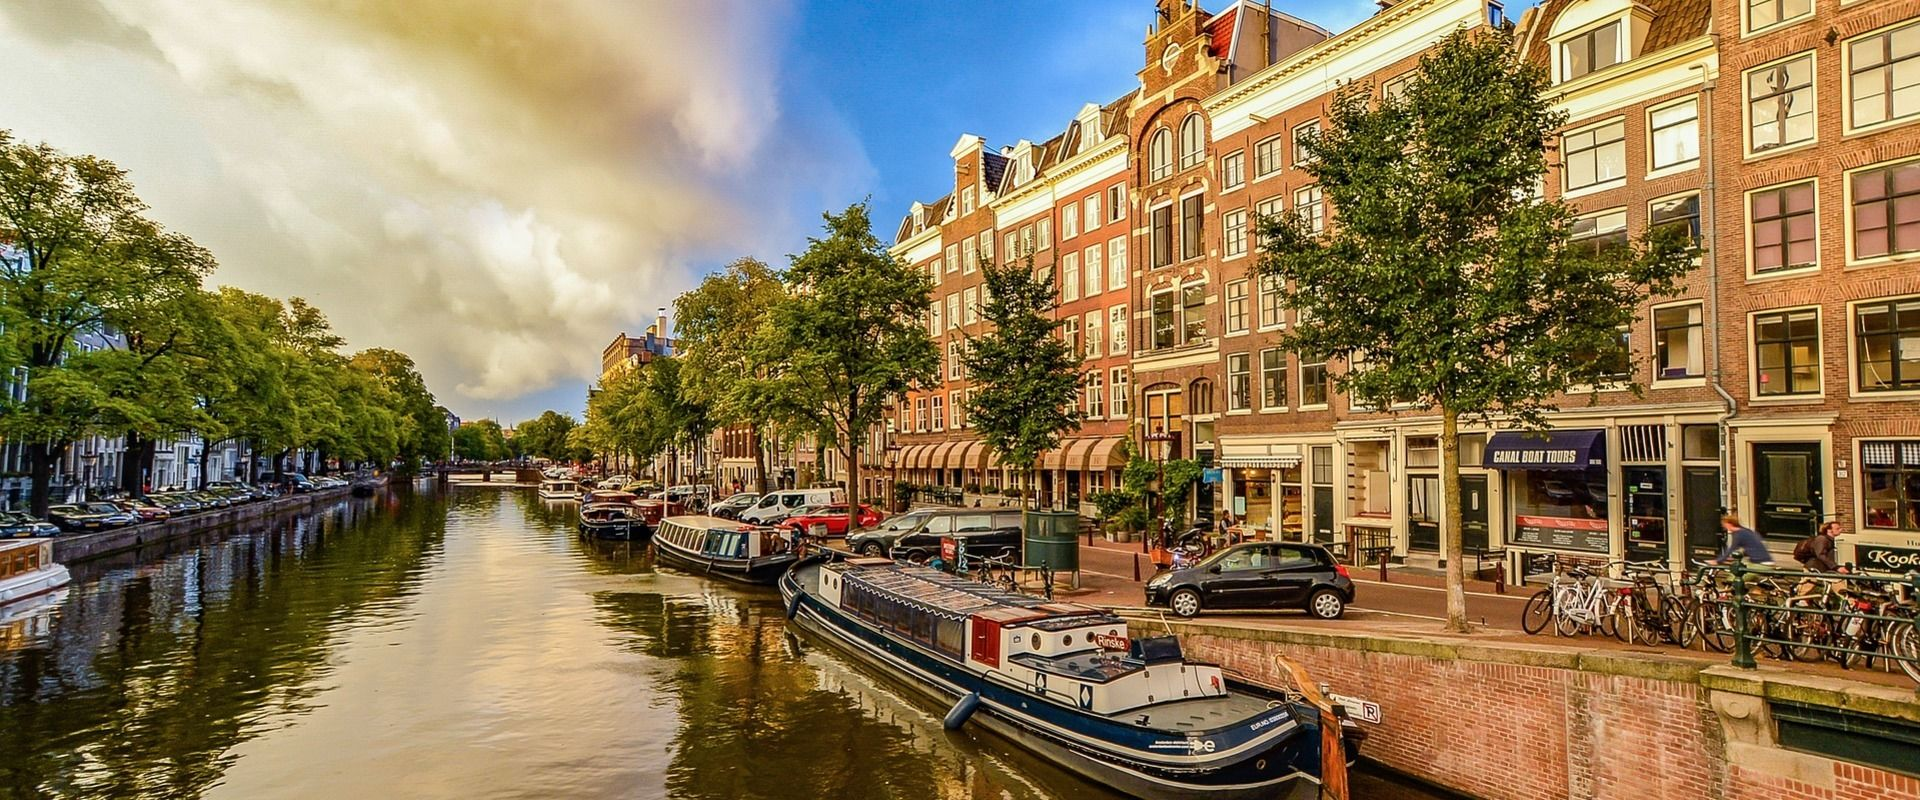 Cheap Flights To Amsterdam Netherlands From Barcelona Spain €69